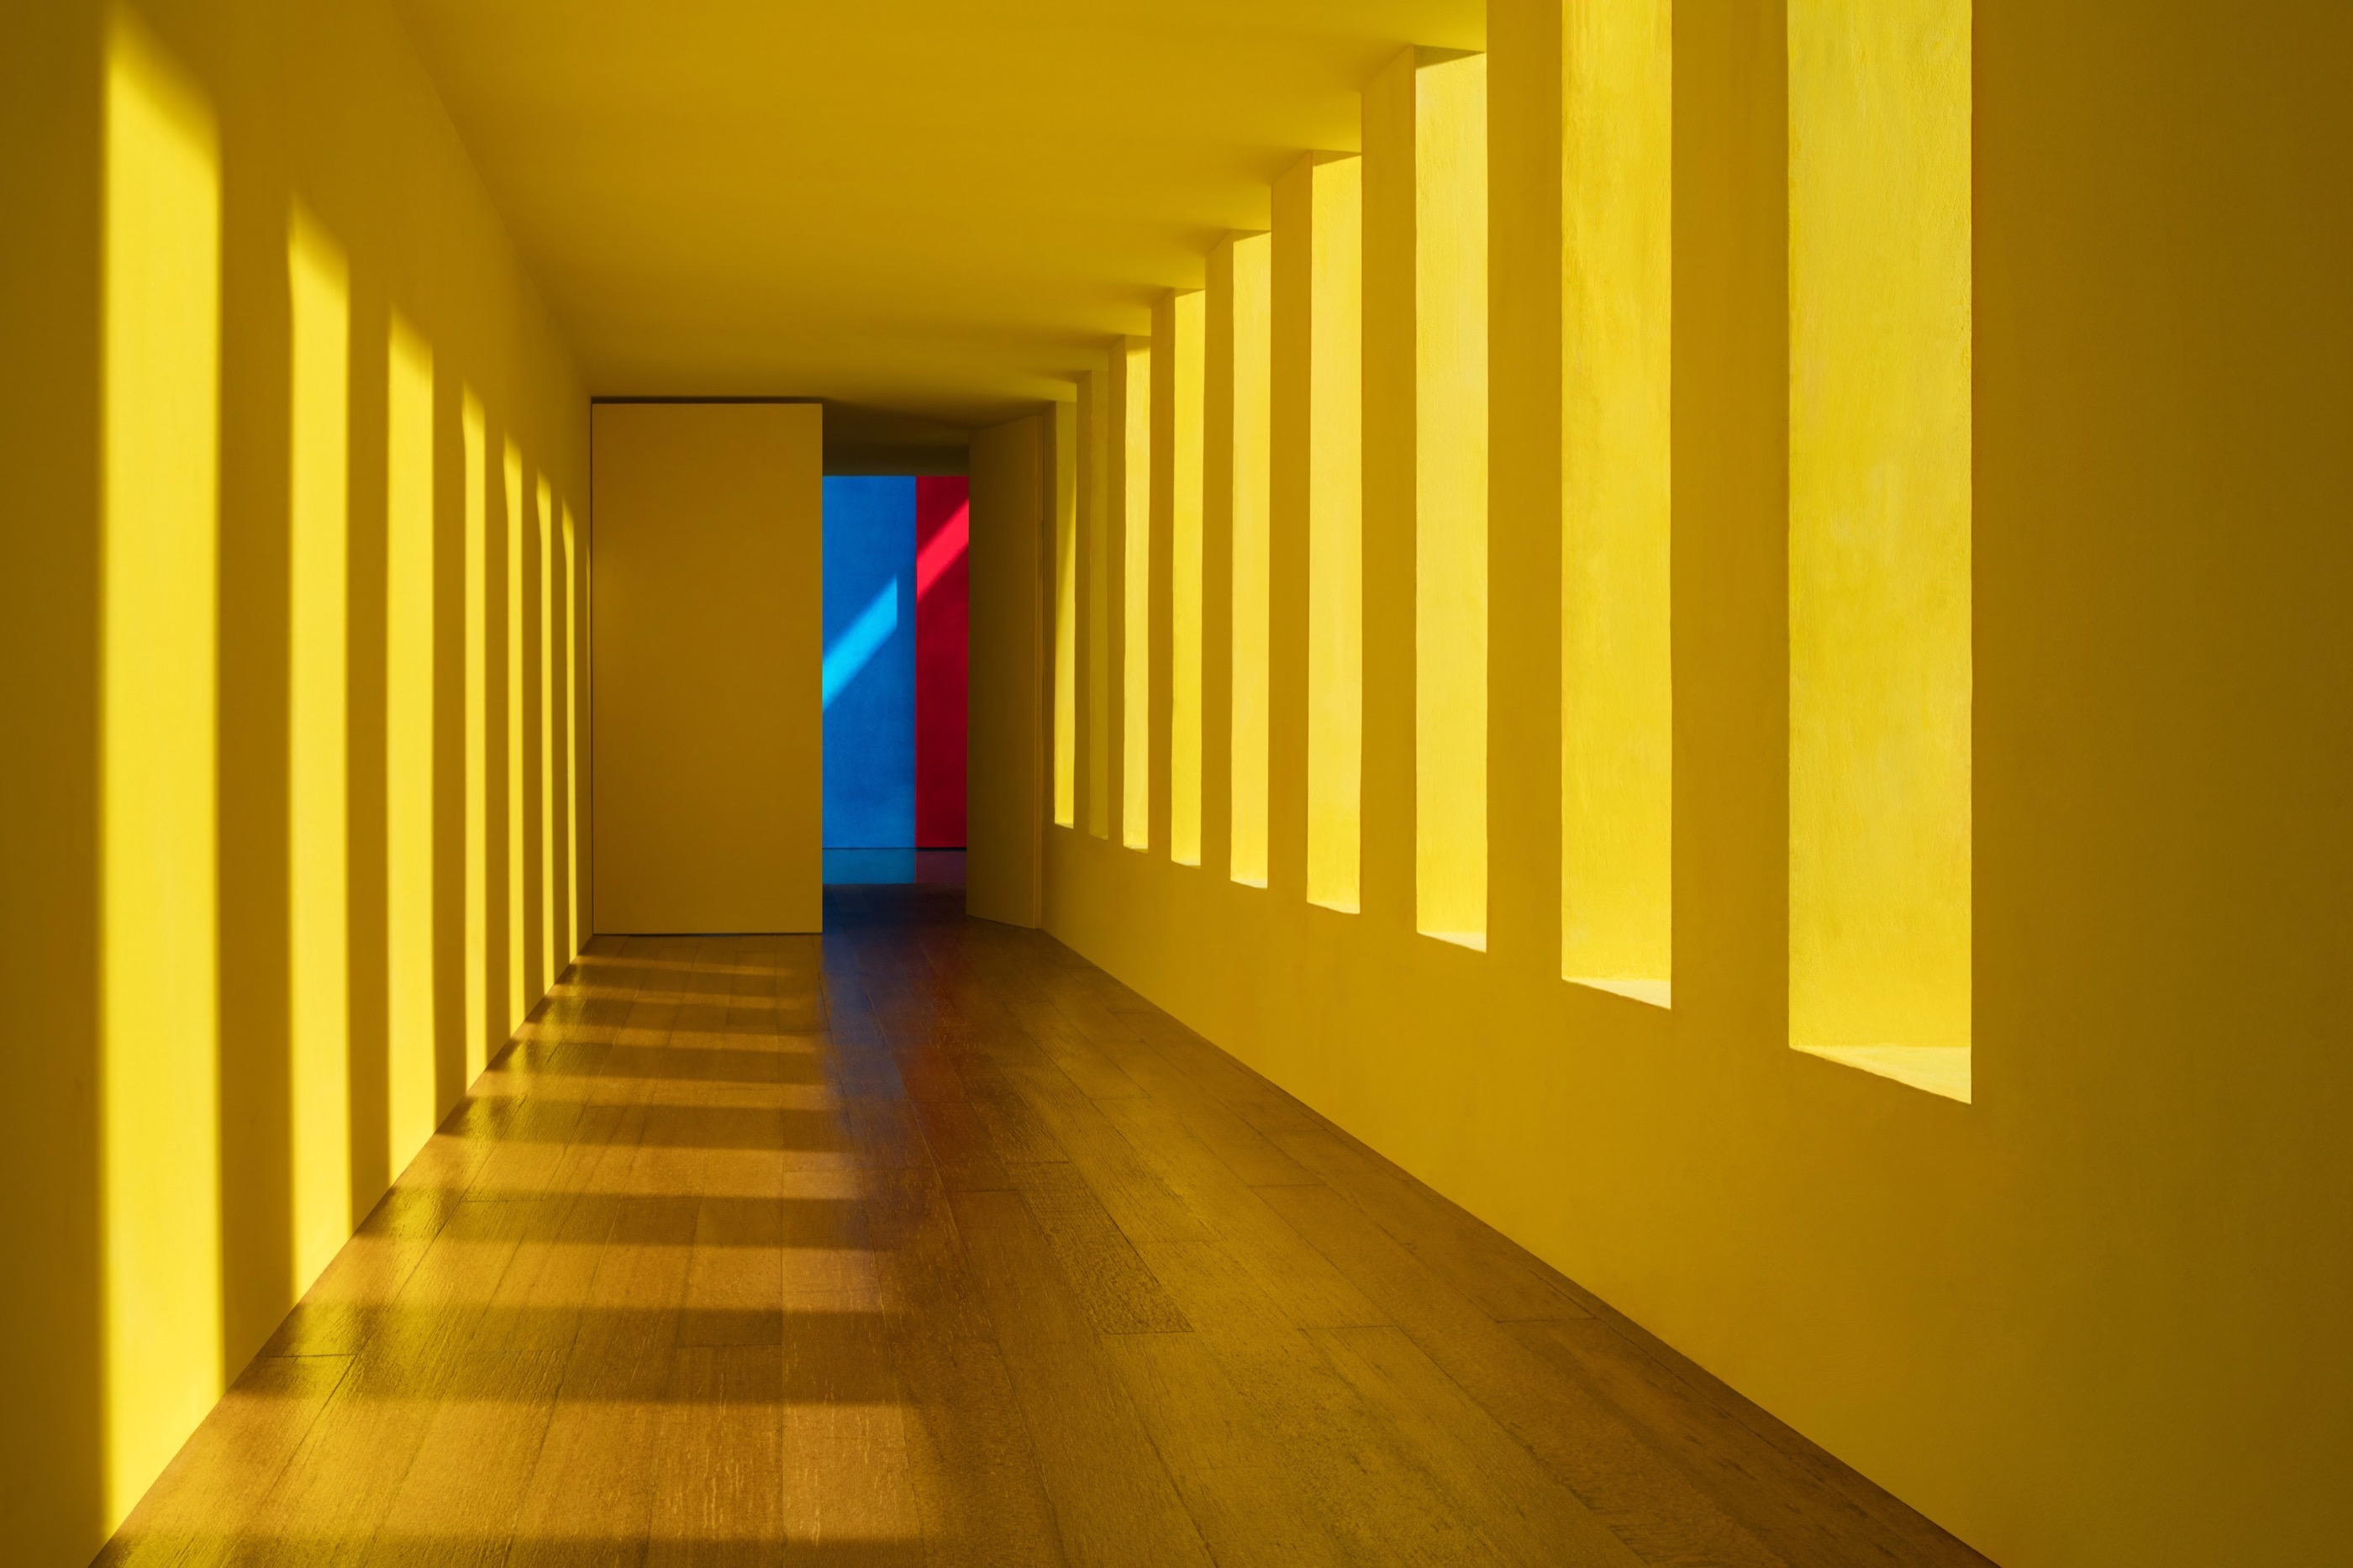 Interior shot of a yellow corridor with pale wood floors and window cutouts through which light comes through and casts shadows on the opposite wall. At the end of the corridor are a bright blue and red walls.